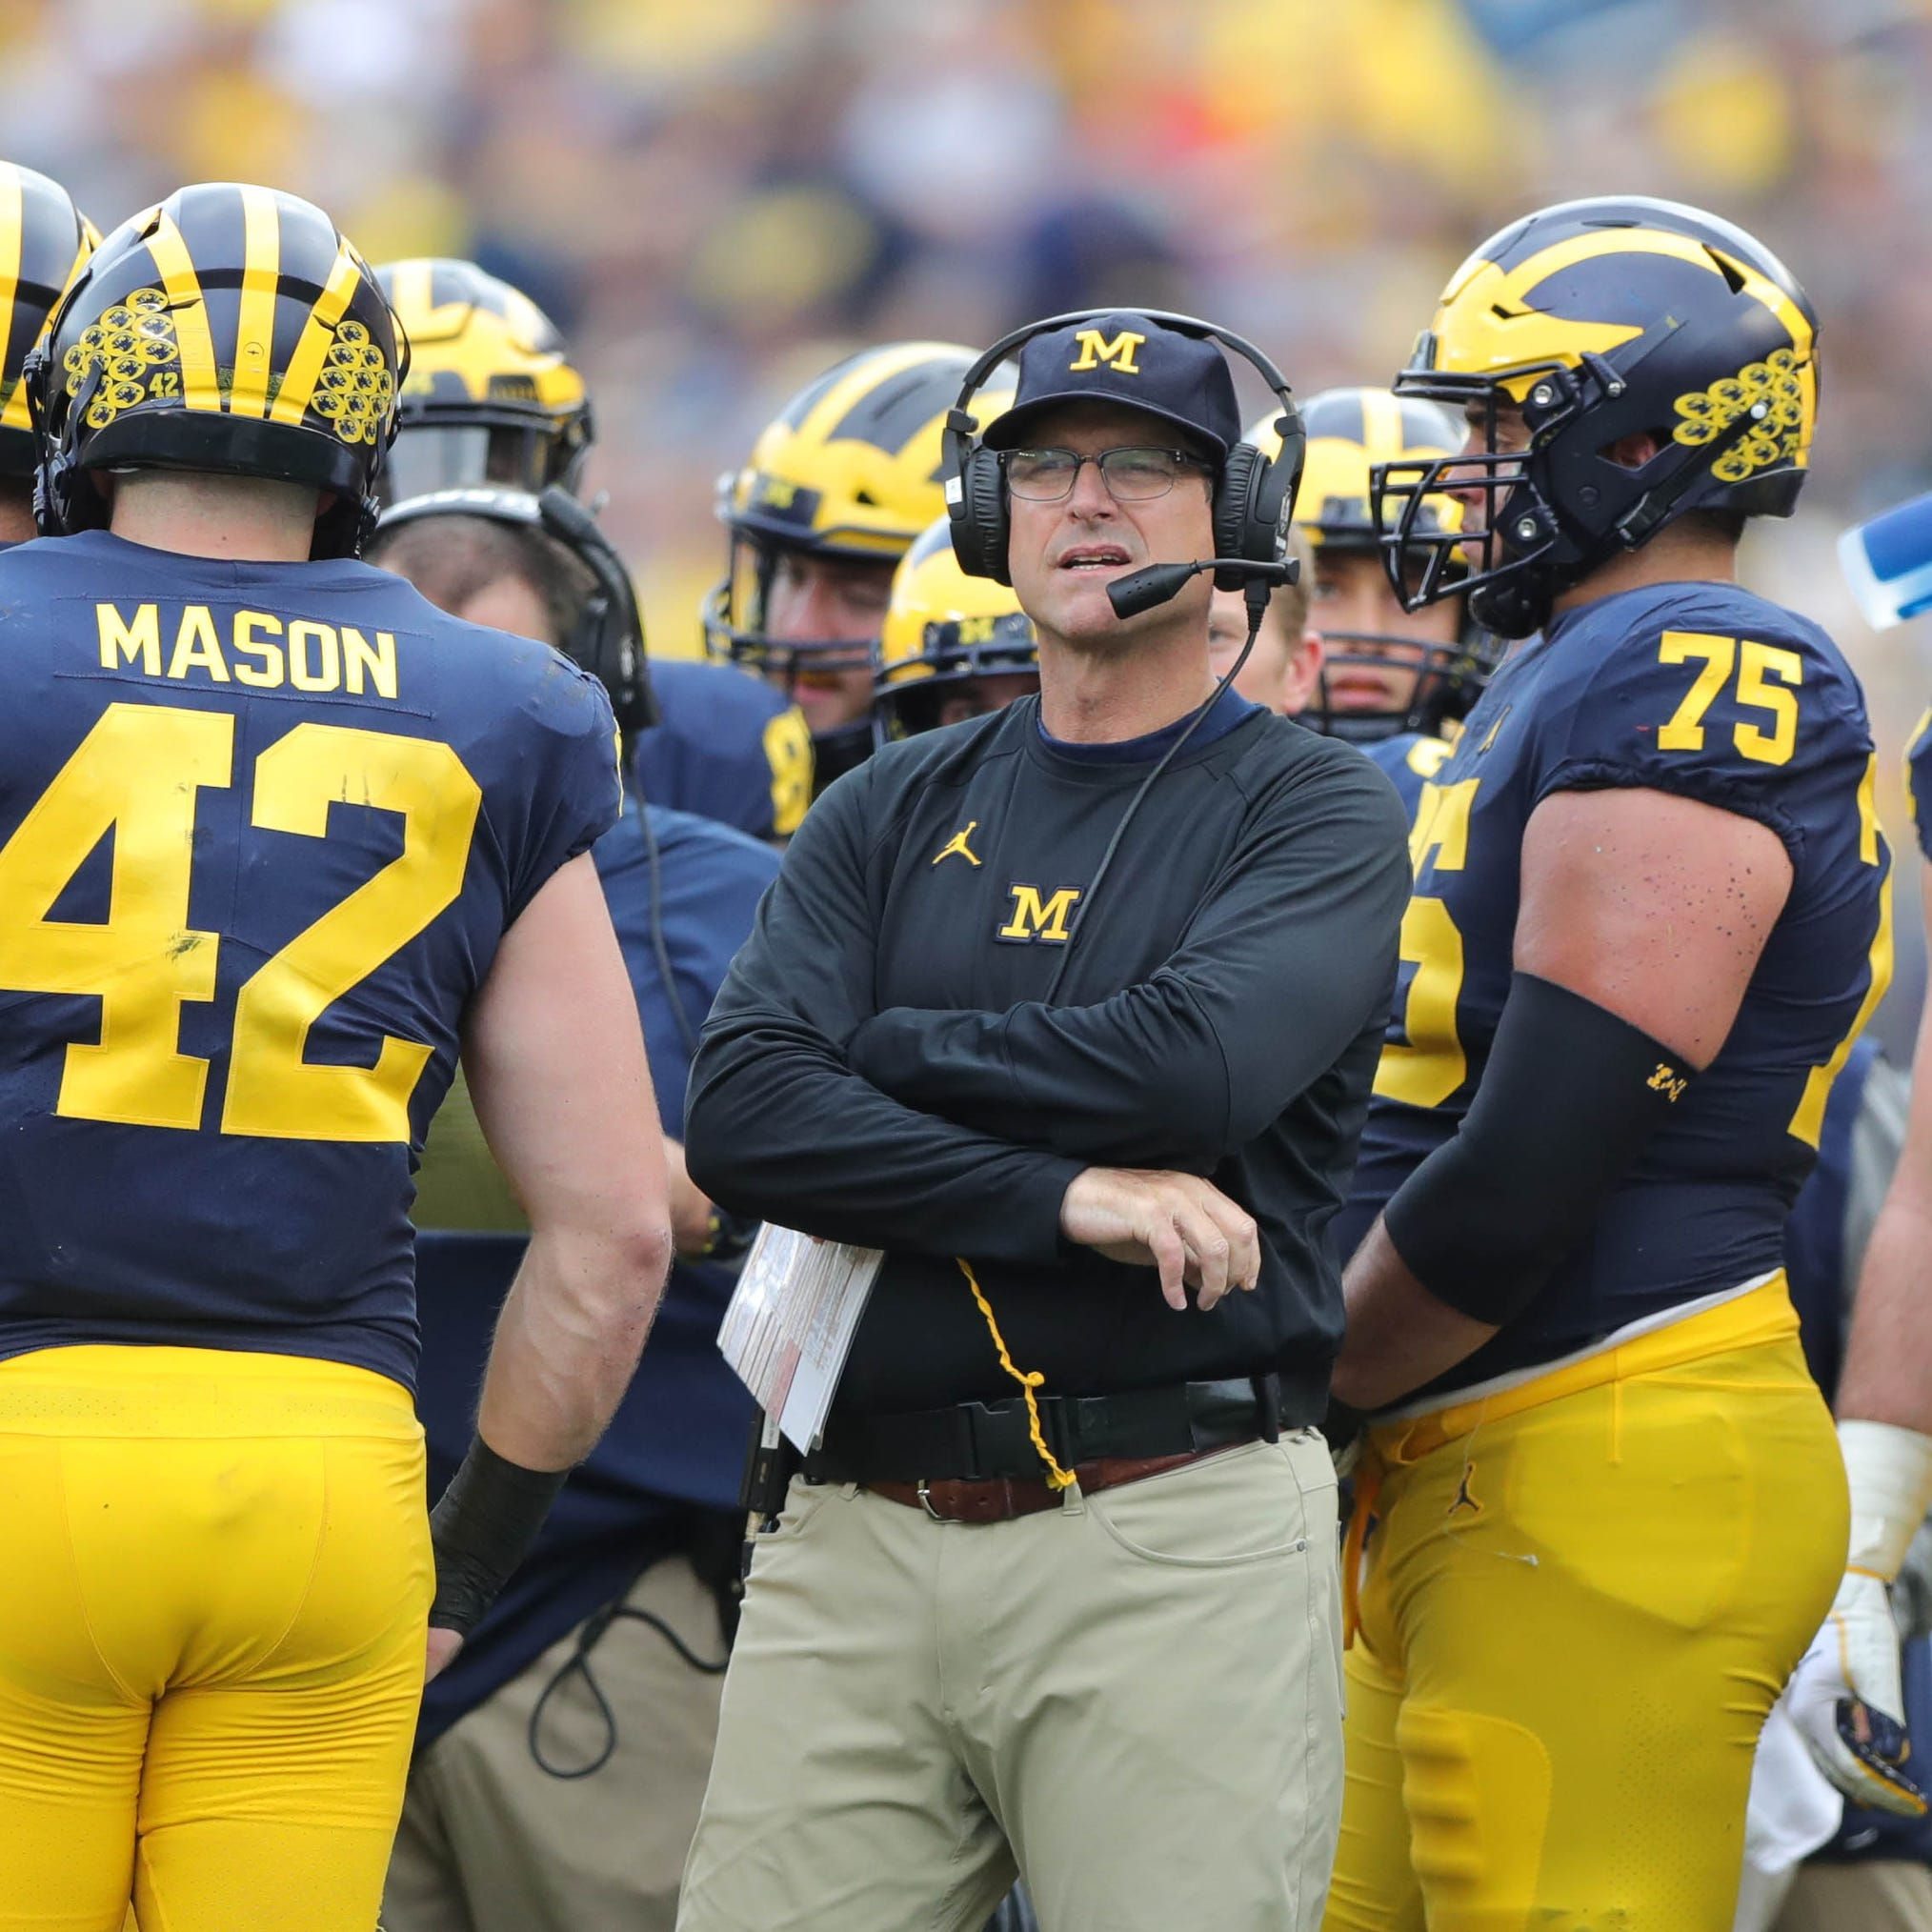 Michigan's Jim Harbaugh on rivalry trash talk: 'We could all use a break'